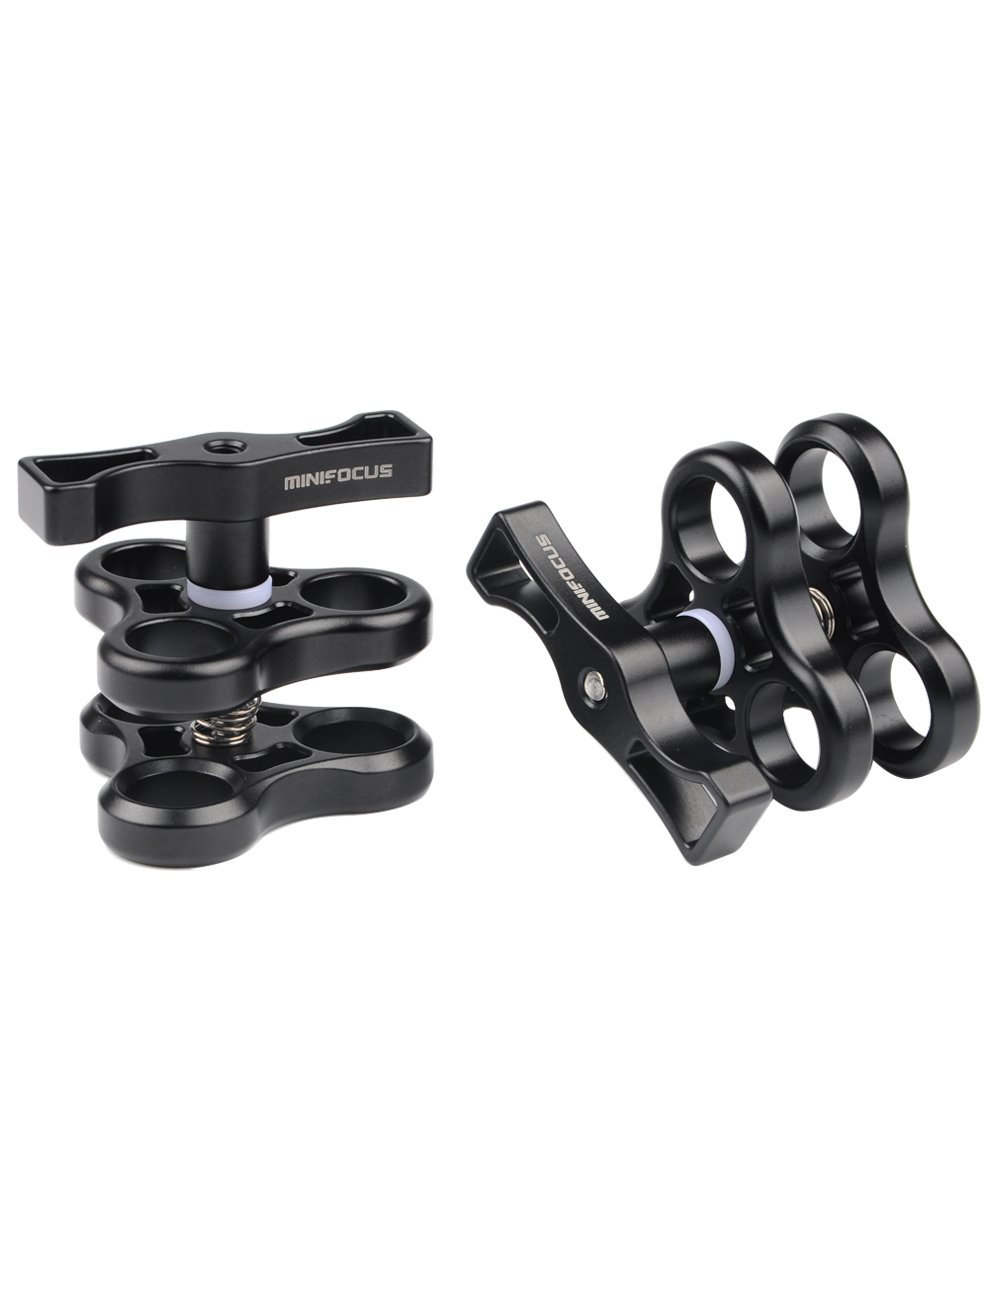 Minifocus 3 Holes Ball Clamp Mount 1'' Triple Holes Camp for Video Light Flash Light Arm System Underwater Diving Camera Arm Tray (2 pack)